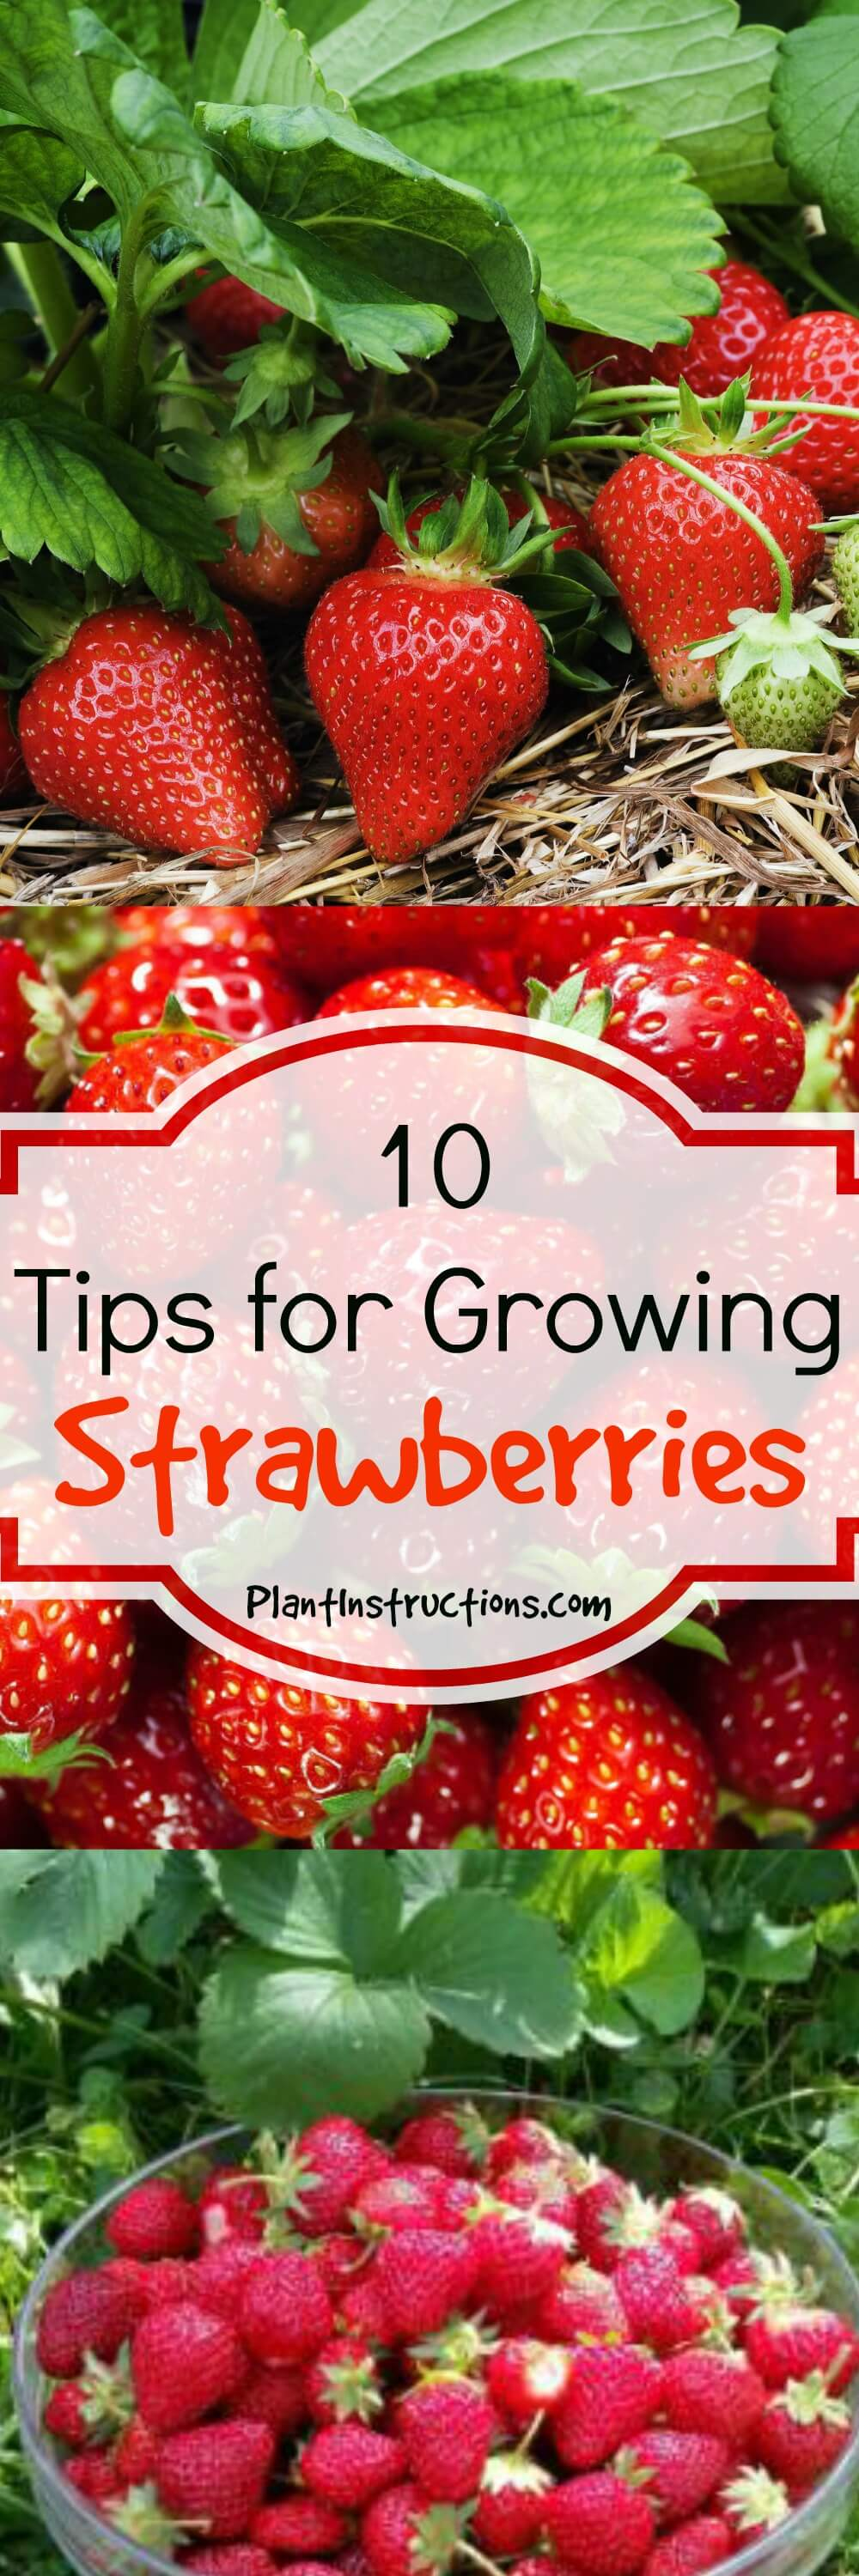 These 10 tips for growing strawberries will ensure you have a full strawberry bounty all summer long! Expert gardening tips for the BEST strawberries ever!